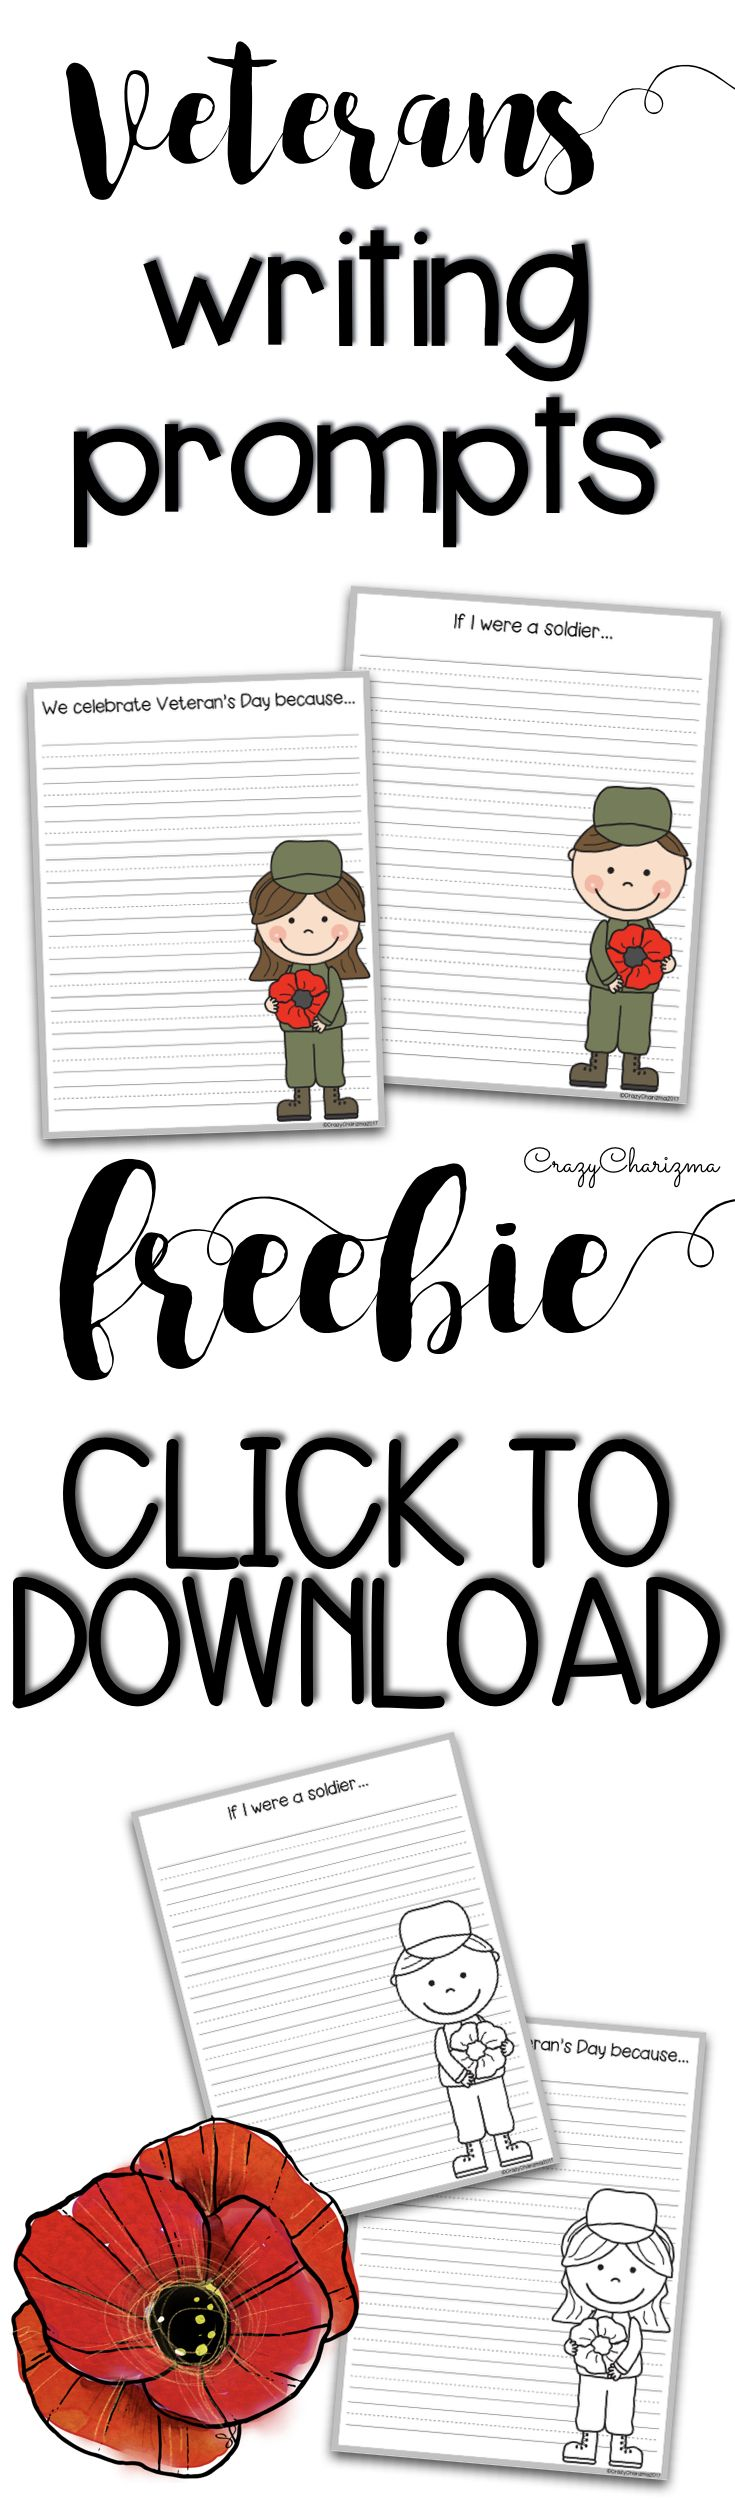 Free Veterans Day Writing Prompts for Kindergarten, first and second grade!